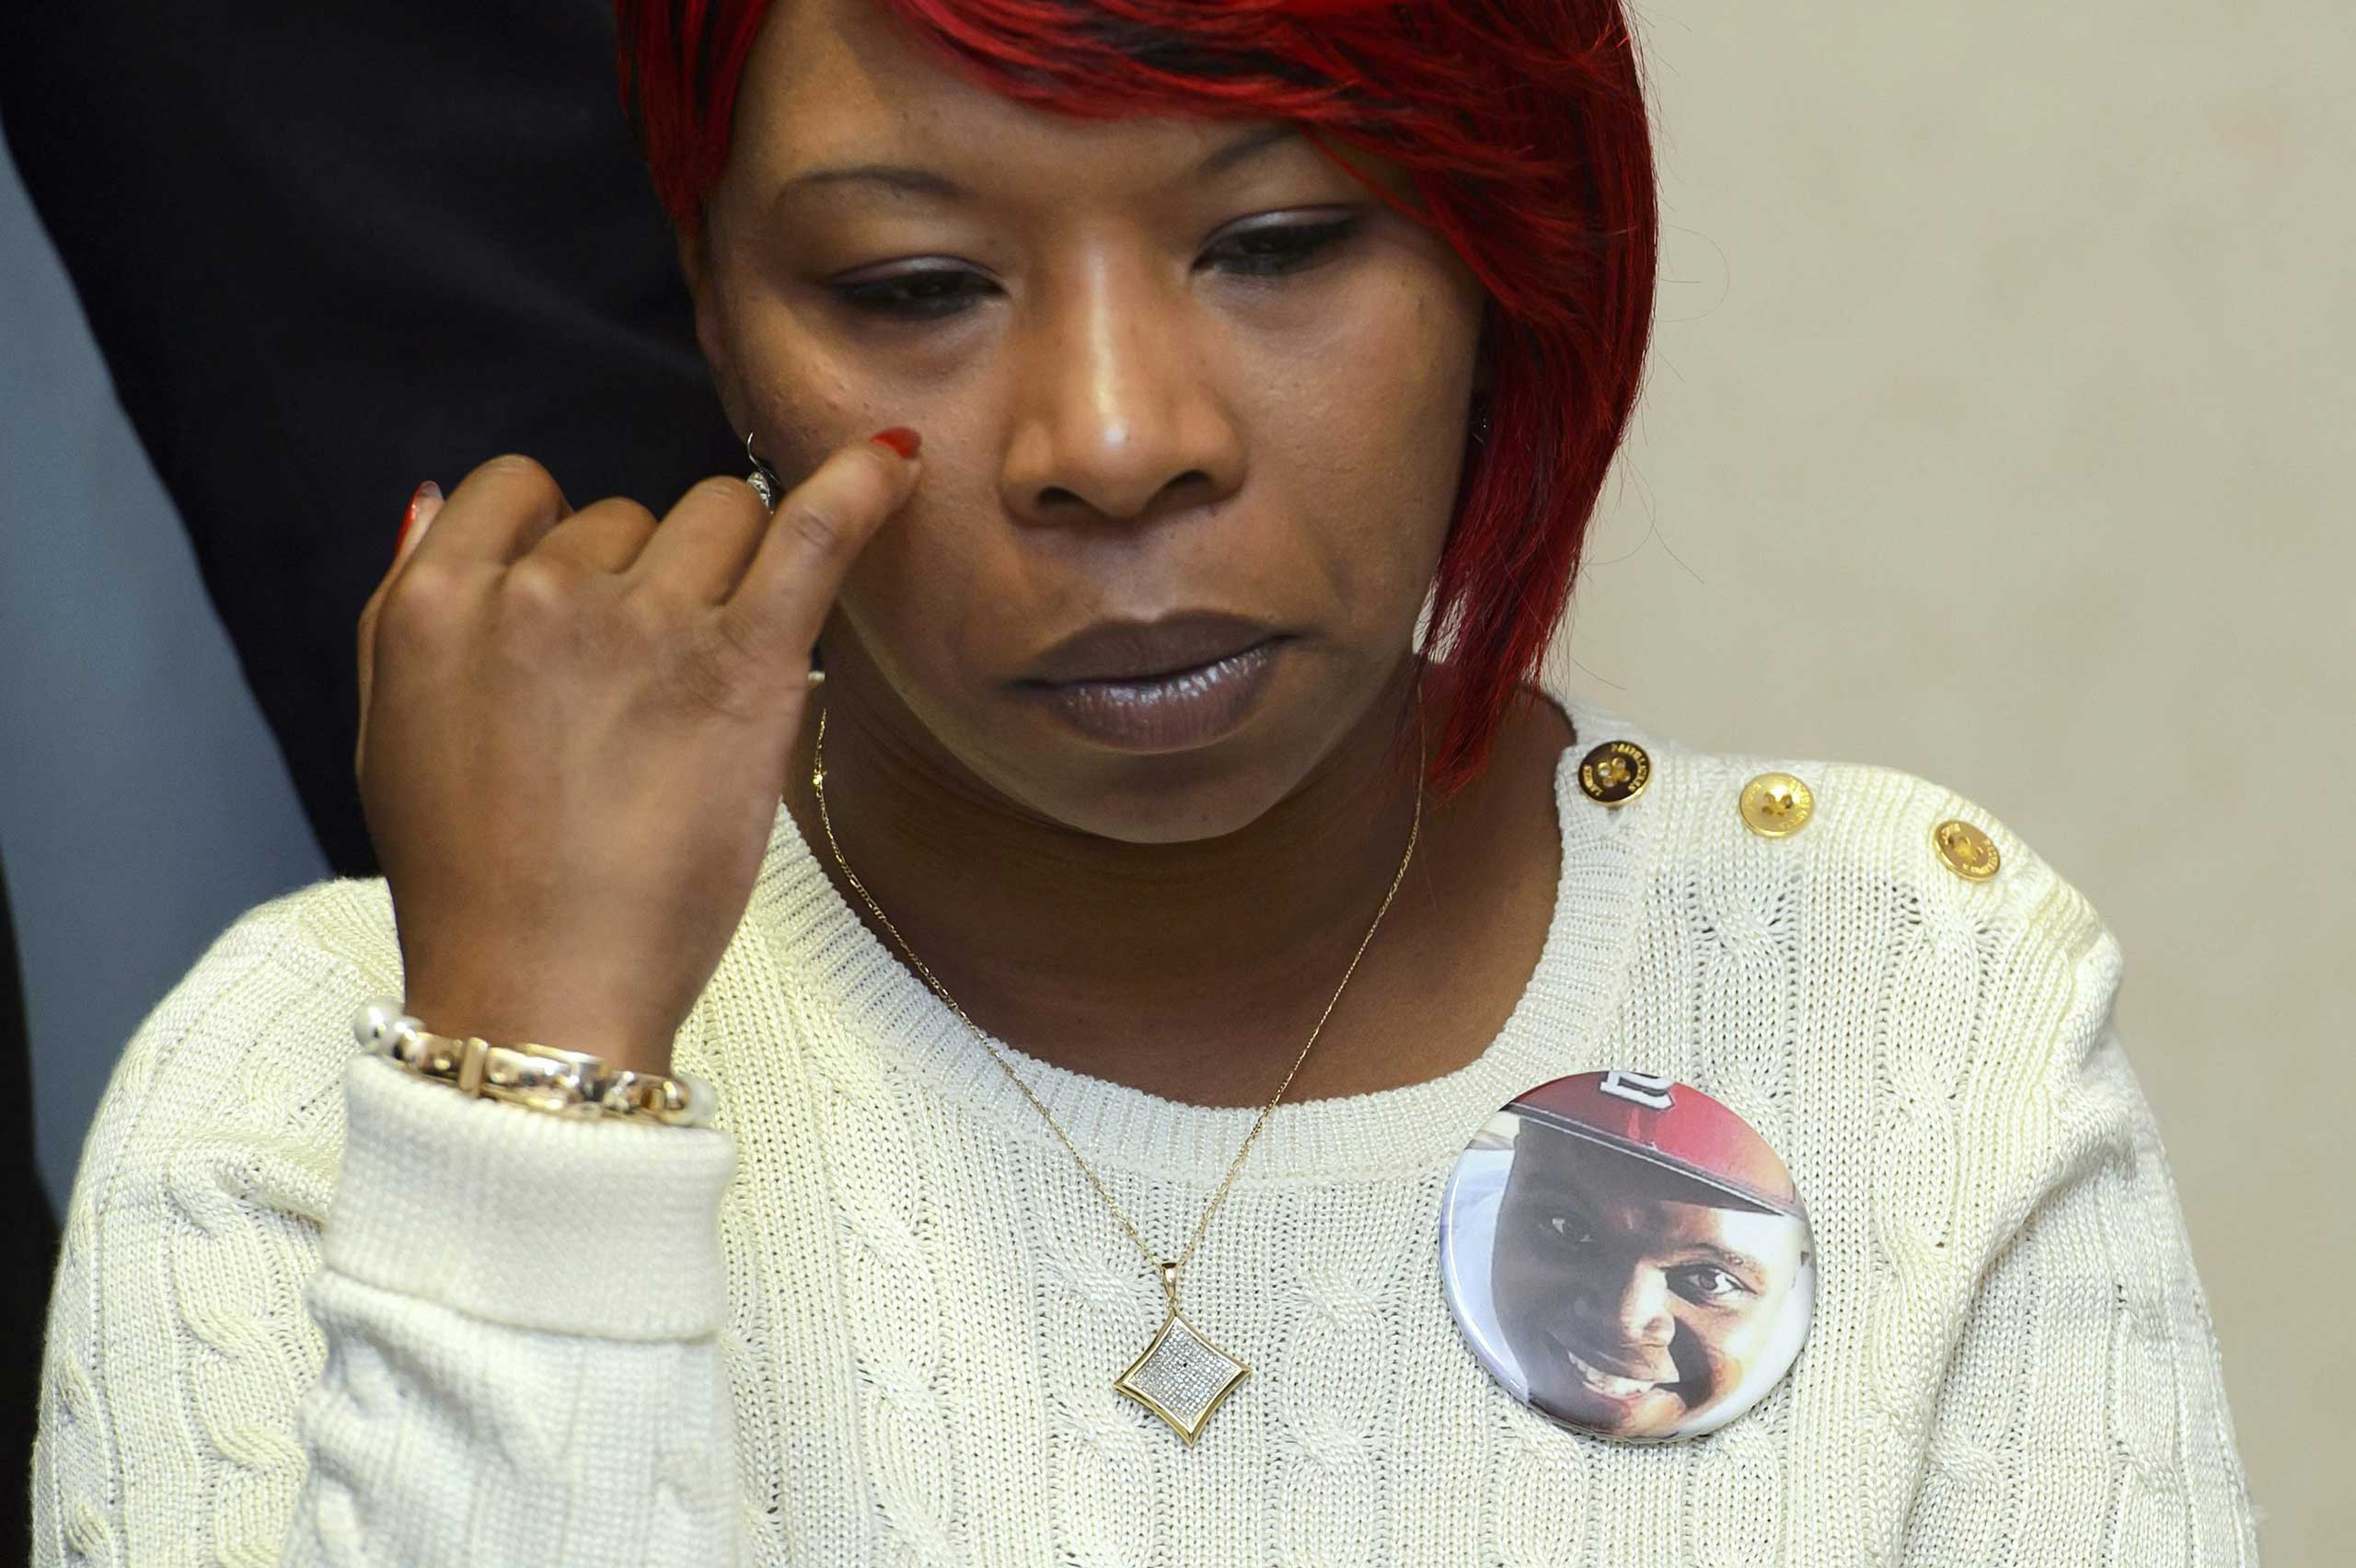 Lesley McSpadden, Michael Brown's mother, attends a press conference addressing the U.N. Committee Against Torture, in Geneva, Switzerland, on Nov. 12, 2014. Brown's parents testified in front of the committee about their son's death.